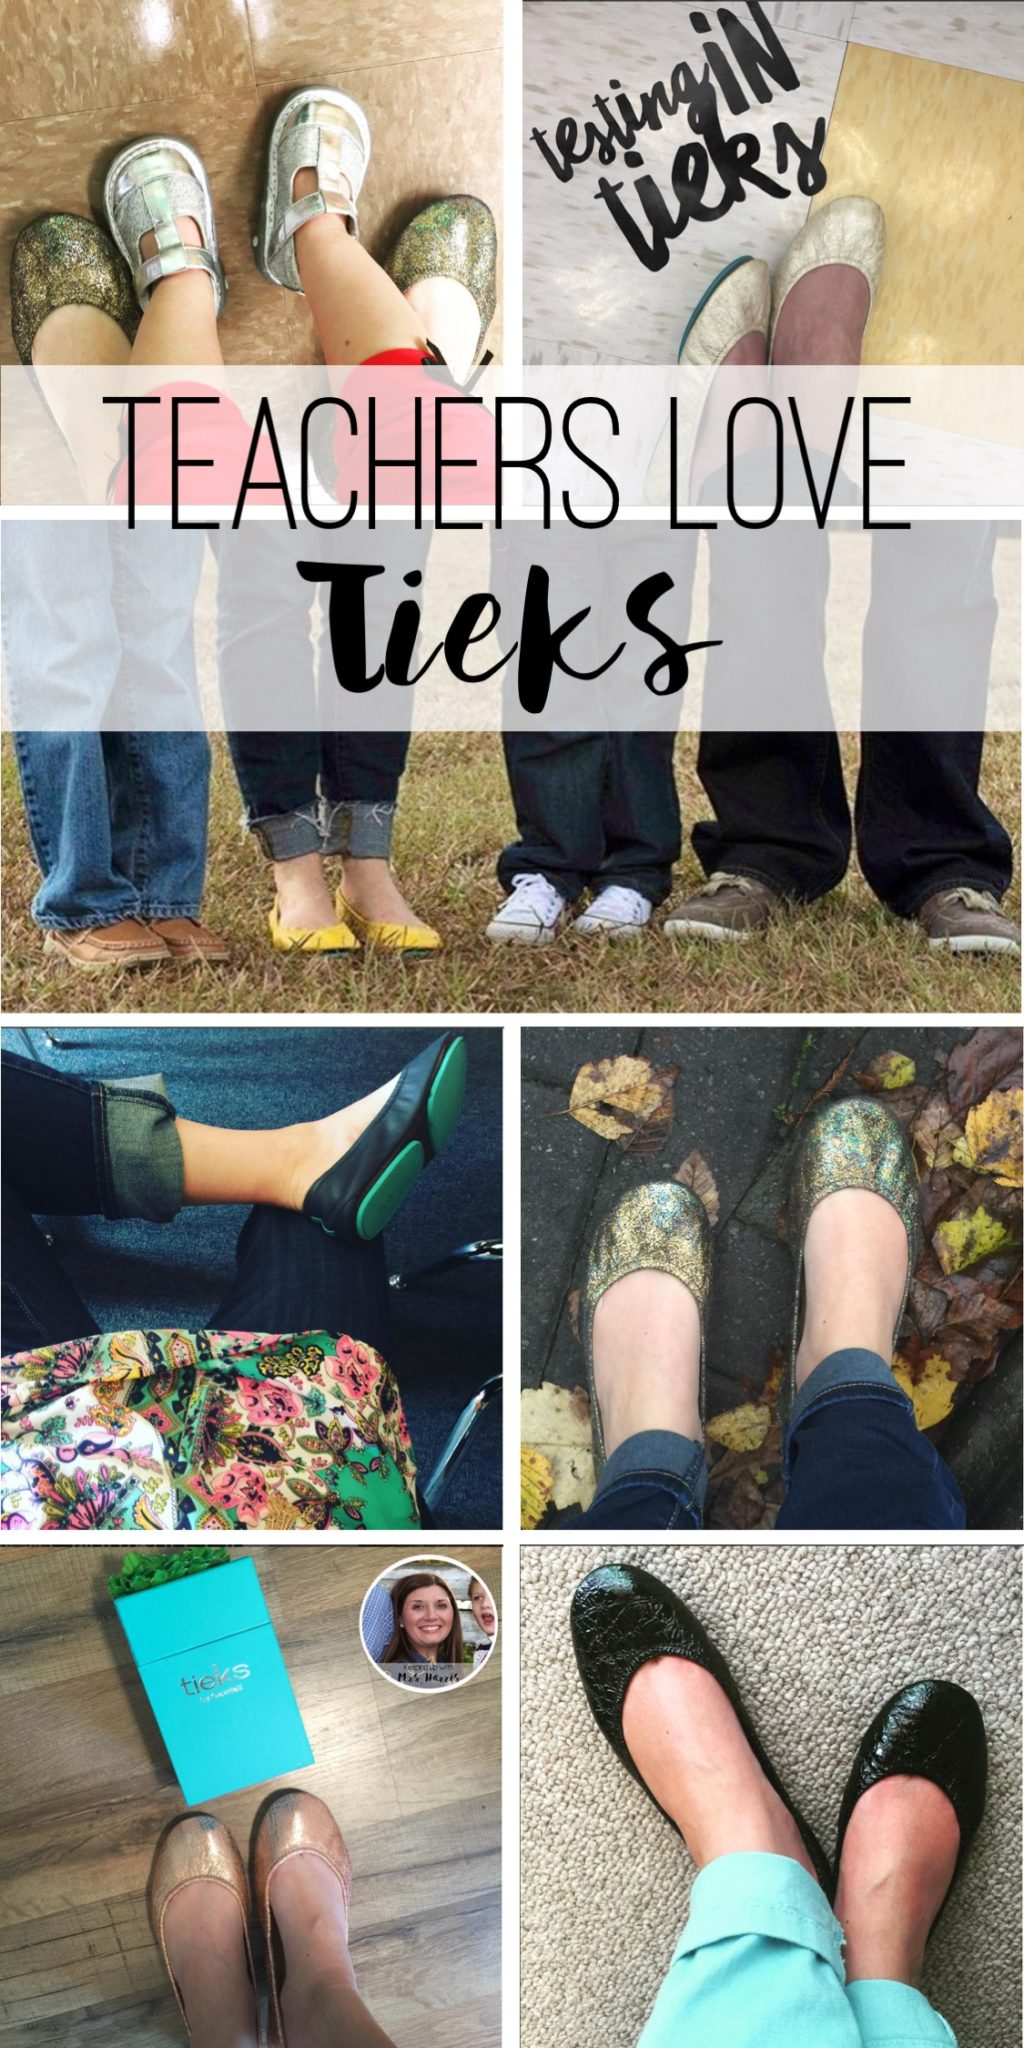 Tieks Gift Card Giveaway - Teachers Love Tieks